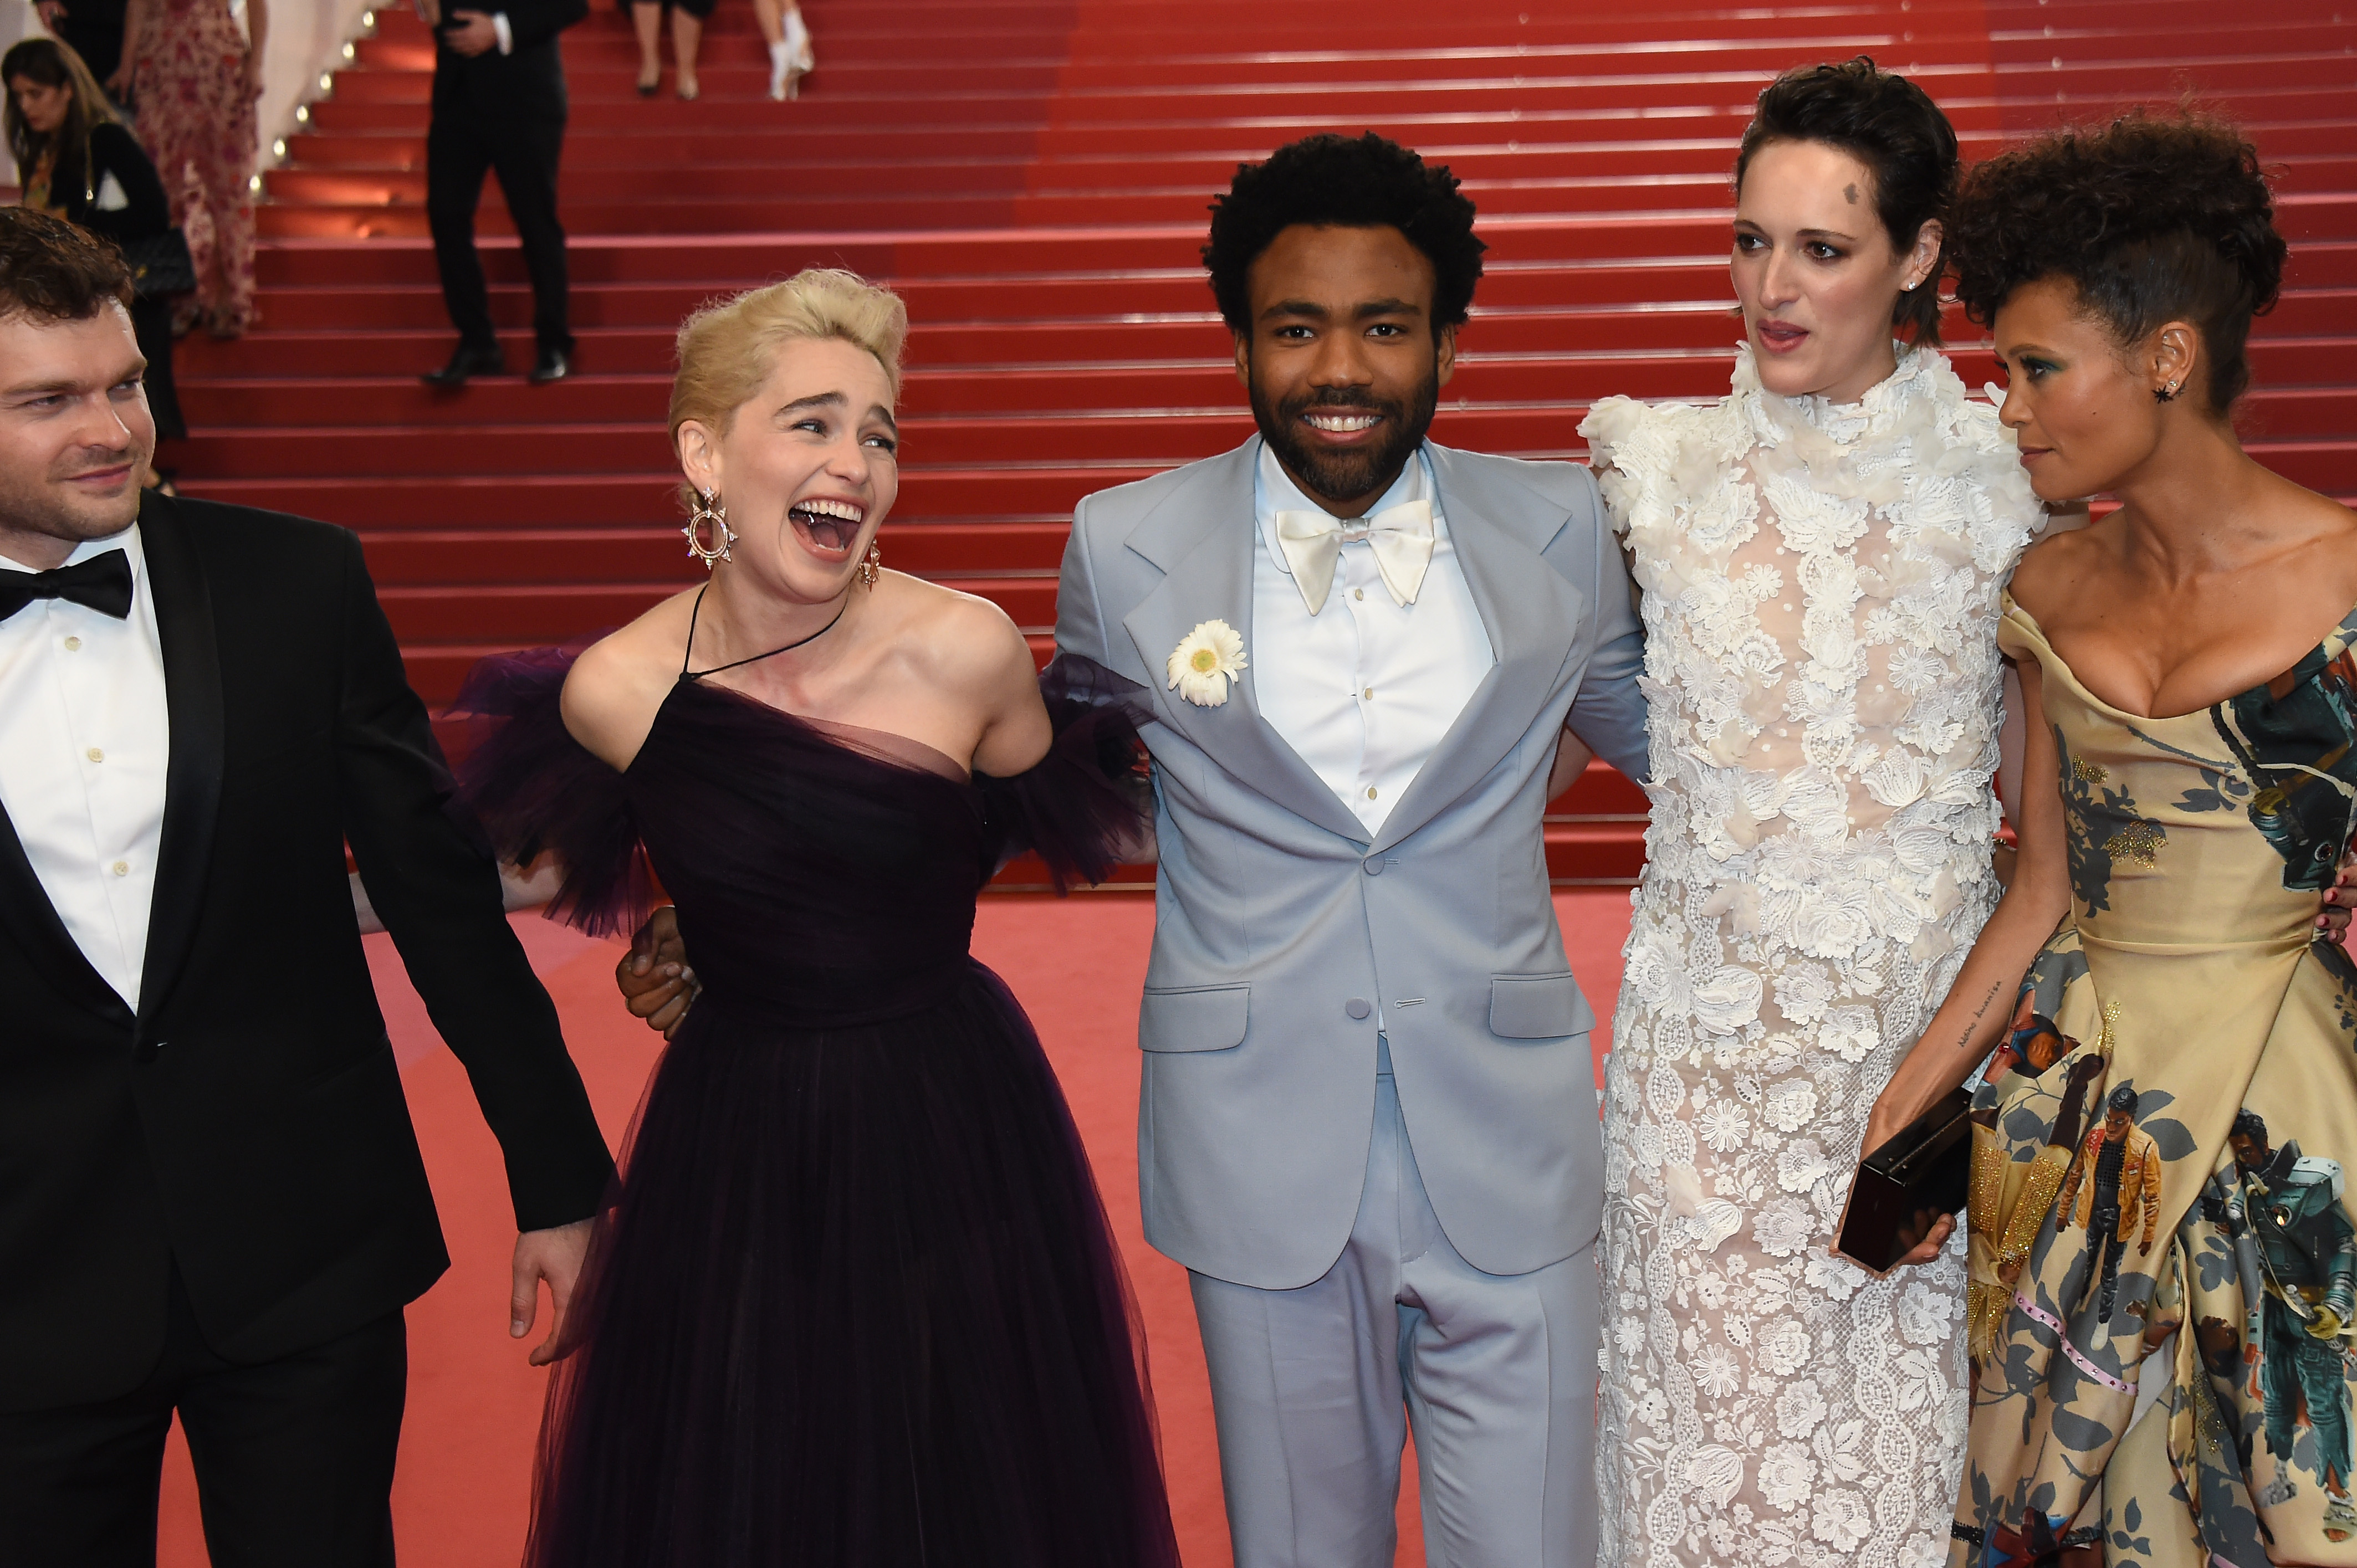 Actors Alden Ehrenreich, Emilia Clarke, Donald Glover, Phoebe Waller-Bridge and Thandie Newton depart the screening of  Solo: A Star Wars Story  during the 71st annual Cannes Film Festival at Palais des Festivals on May 15, 2018 in Cannes, France.